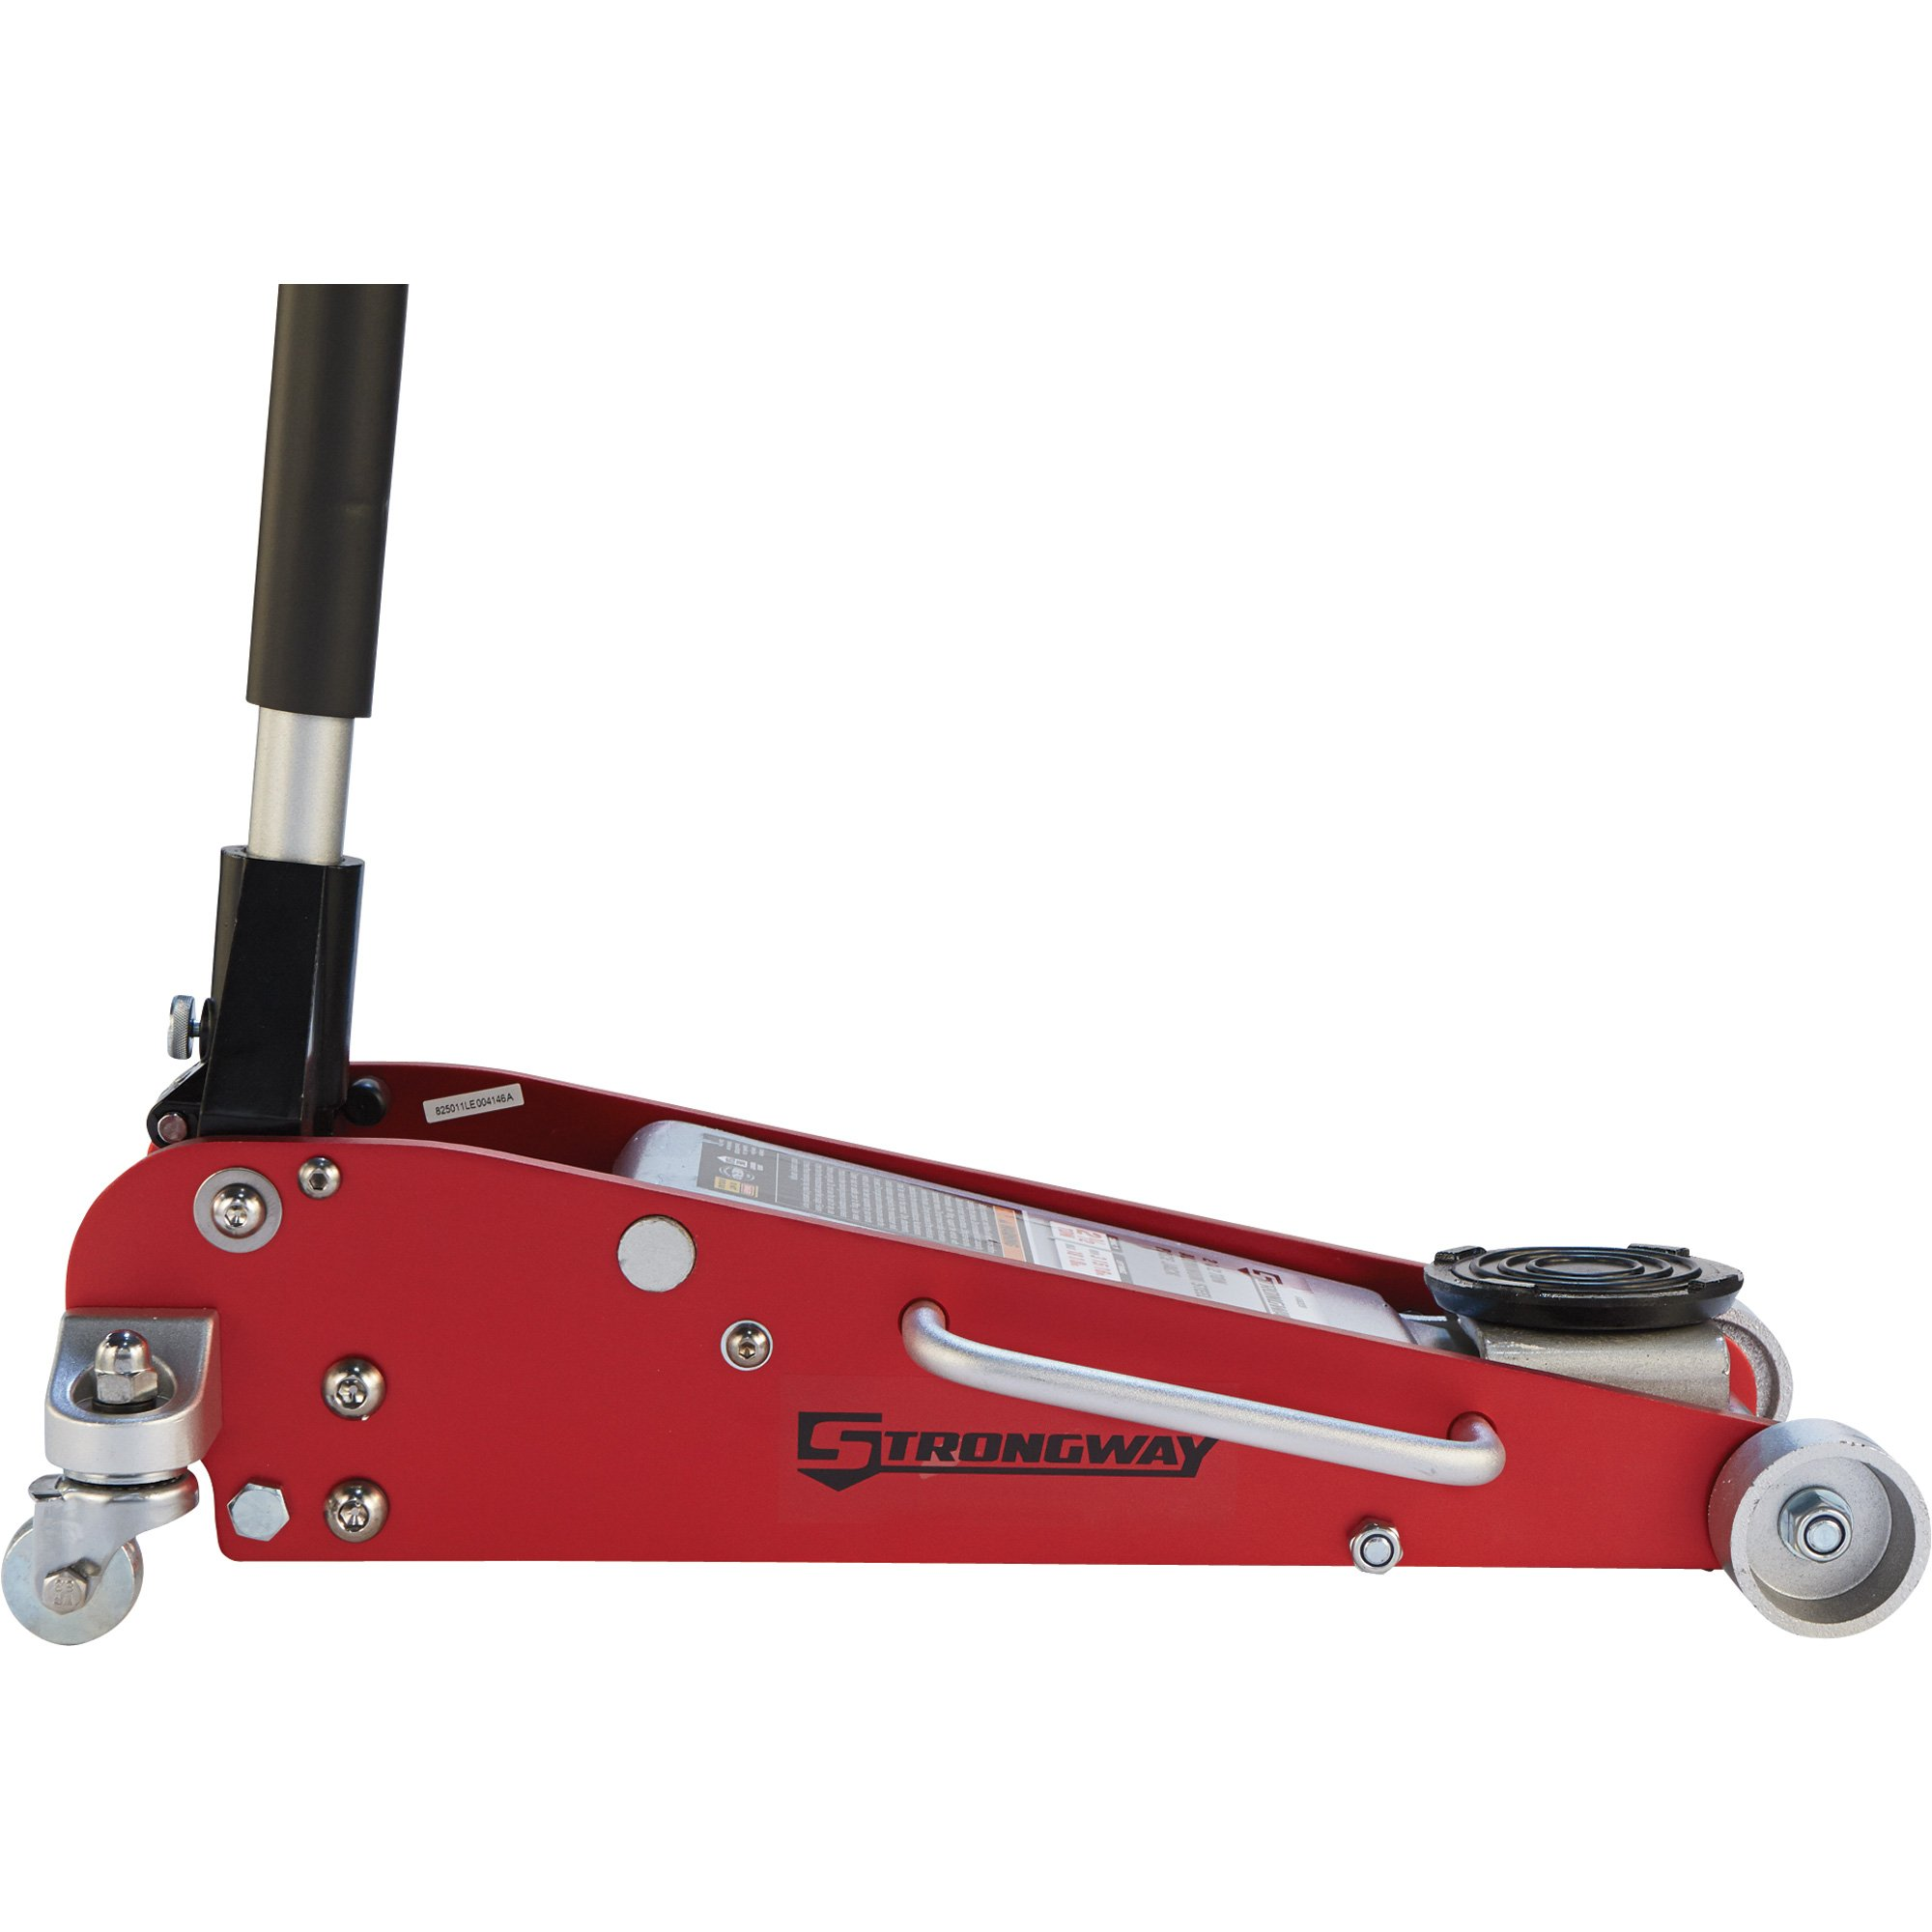 Strongway Hydraulic Aluminum/Steel Quick Lift Service Jack - 2 1/2-Ton Capacity, 3 15/16in.-18 1/8in. Lifting Range